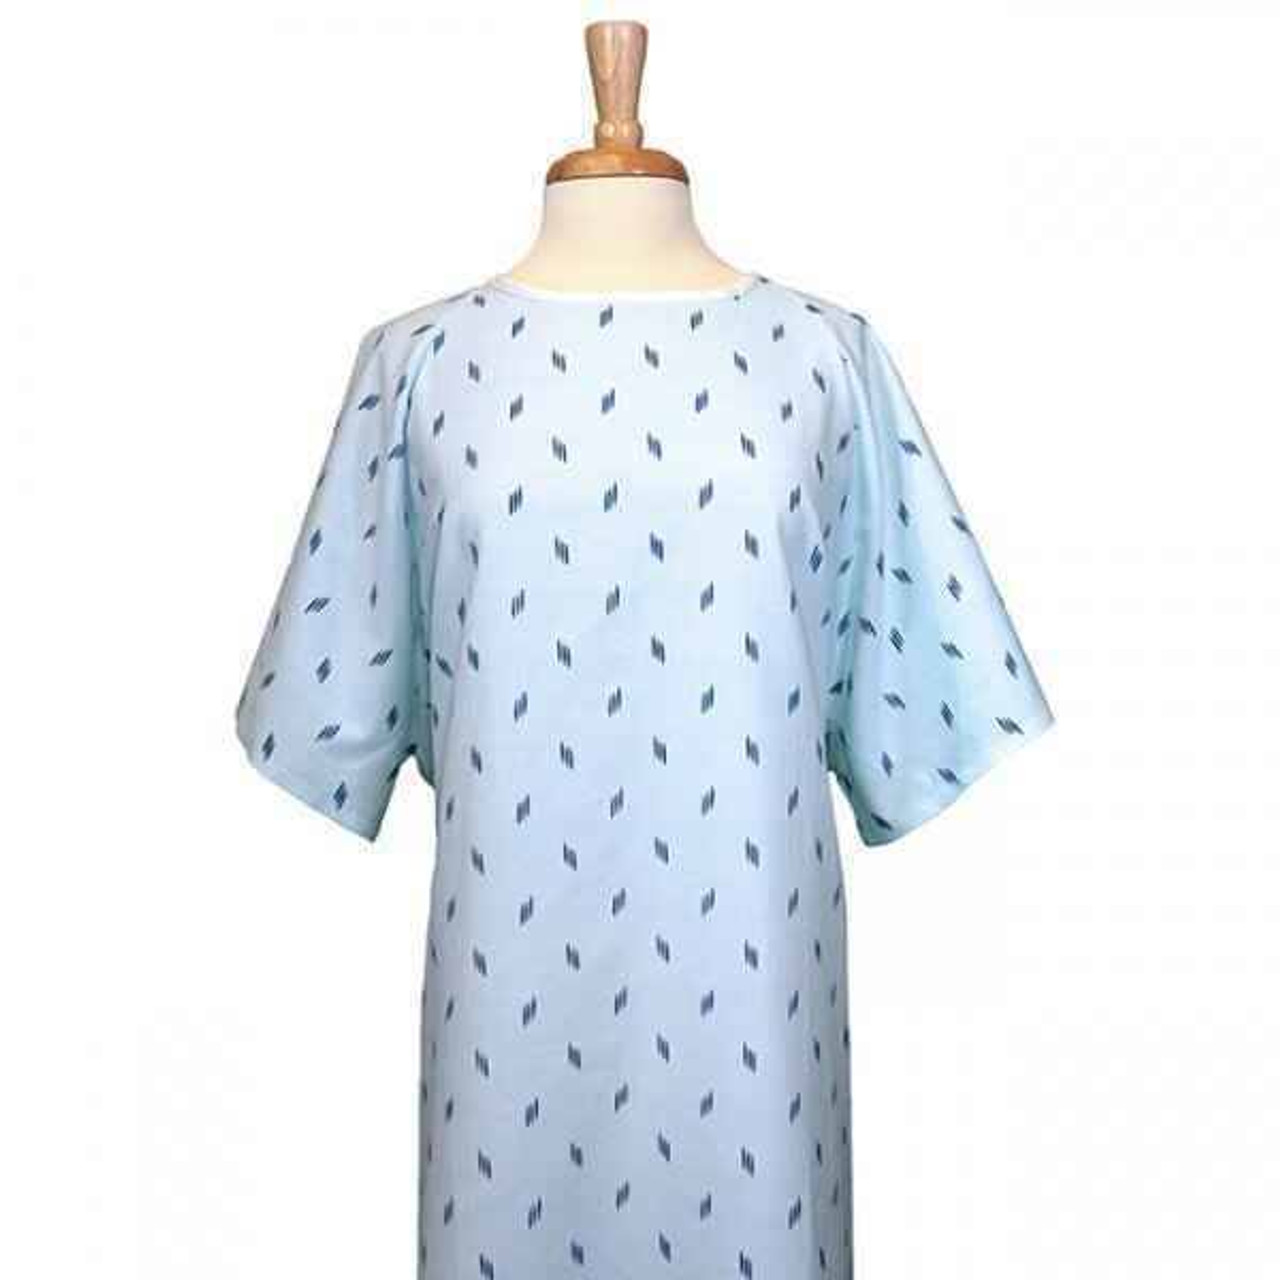 Patient Gown or Ambassador Overlap or Blue Pinstripes or 59 sweep or 1 DZ